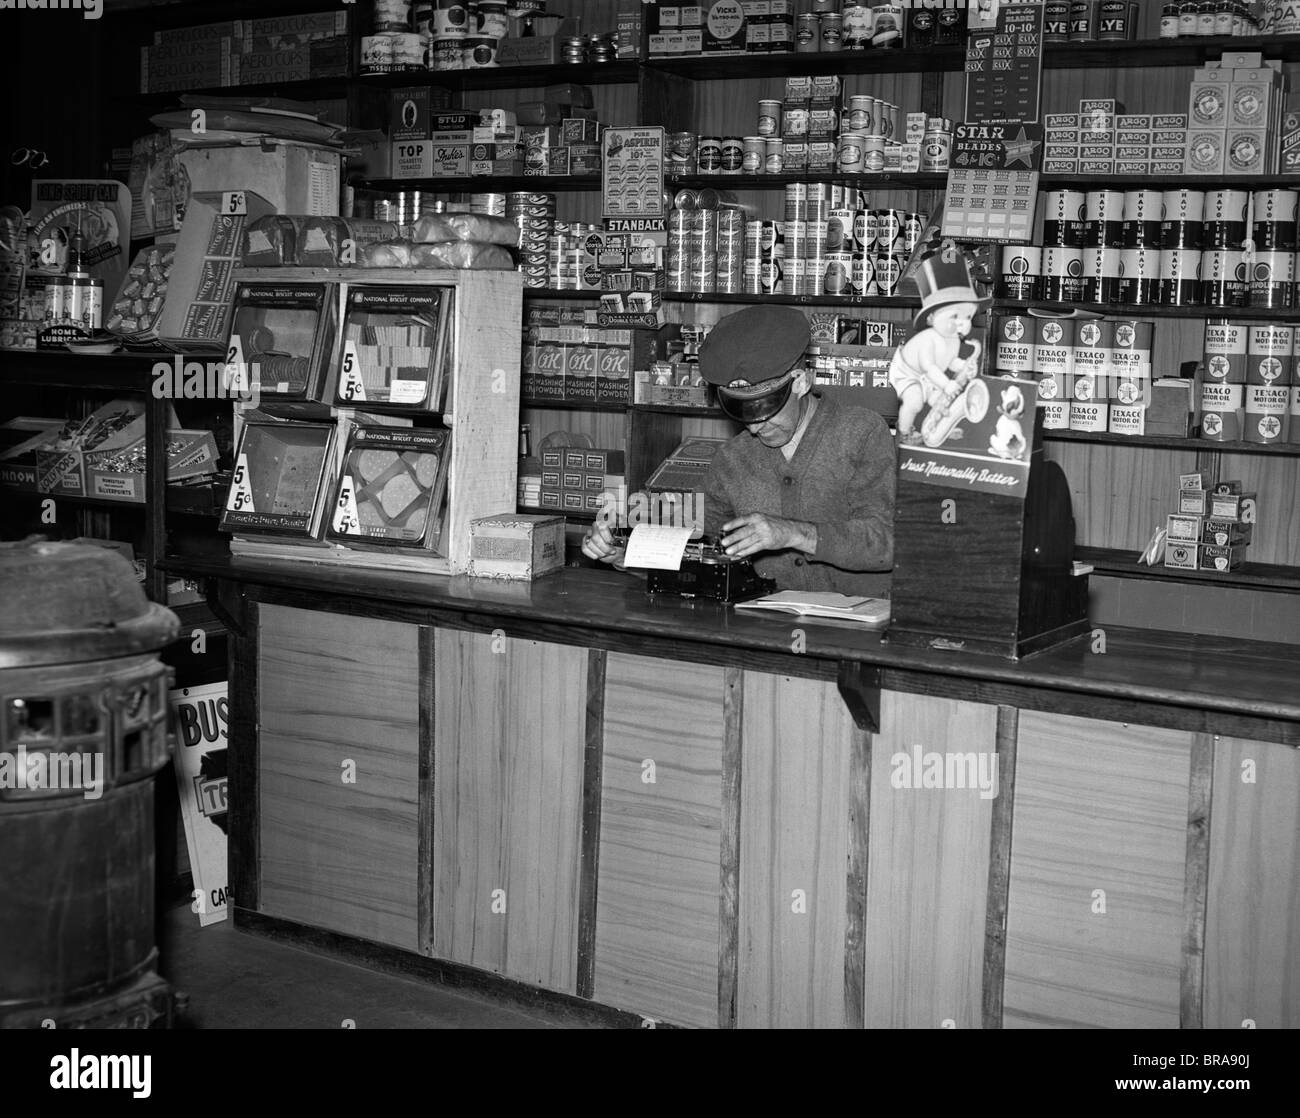 General Store Stock Photos General Store Stock Images: 1930s MAN BEHIND COUNTER IN GENERAL STORE USING TYPEWRITER